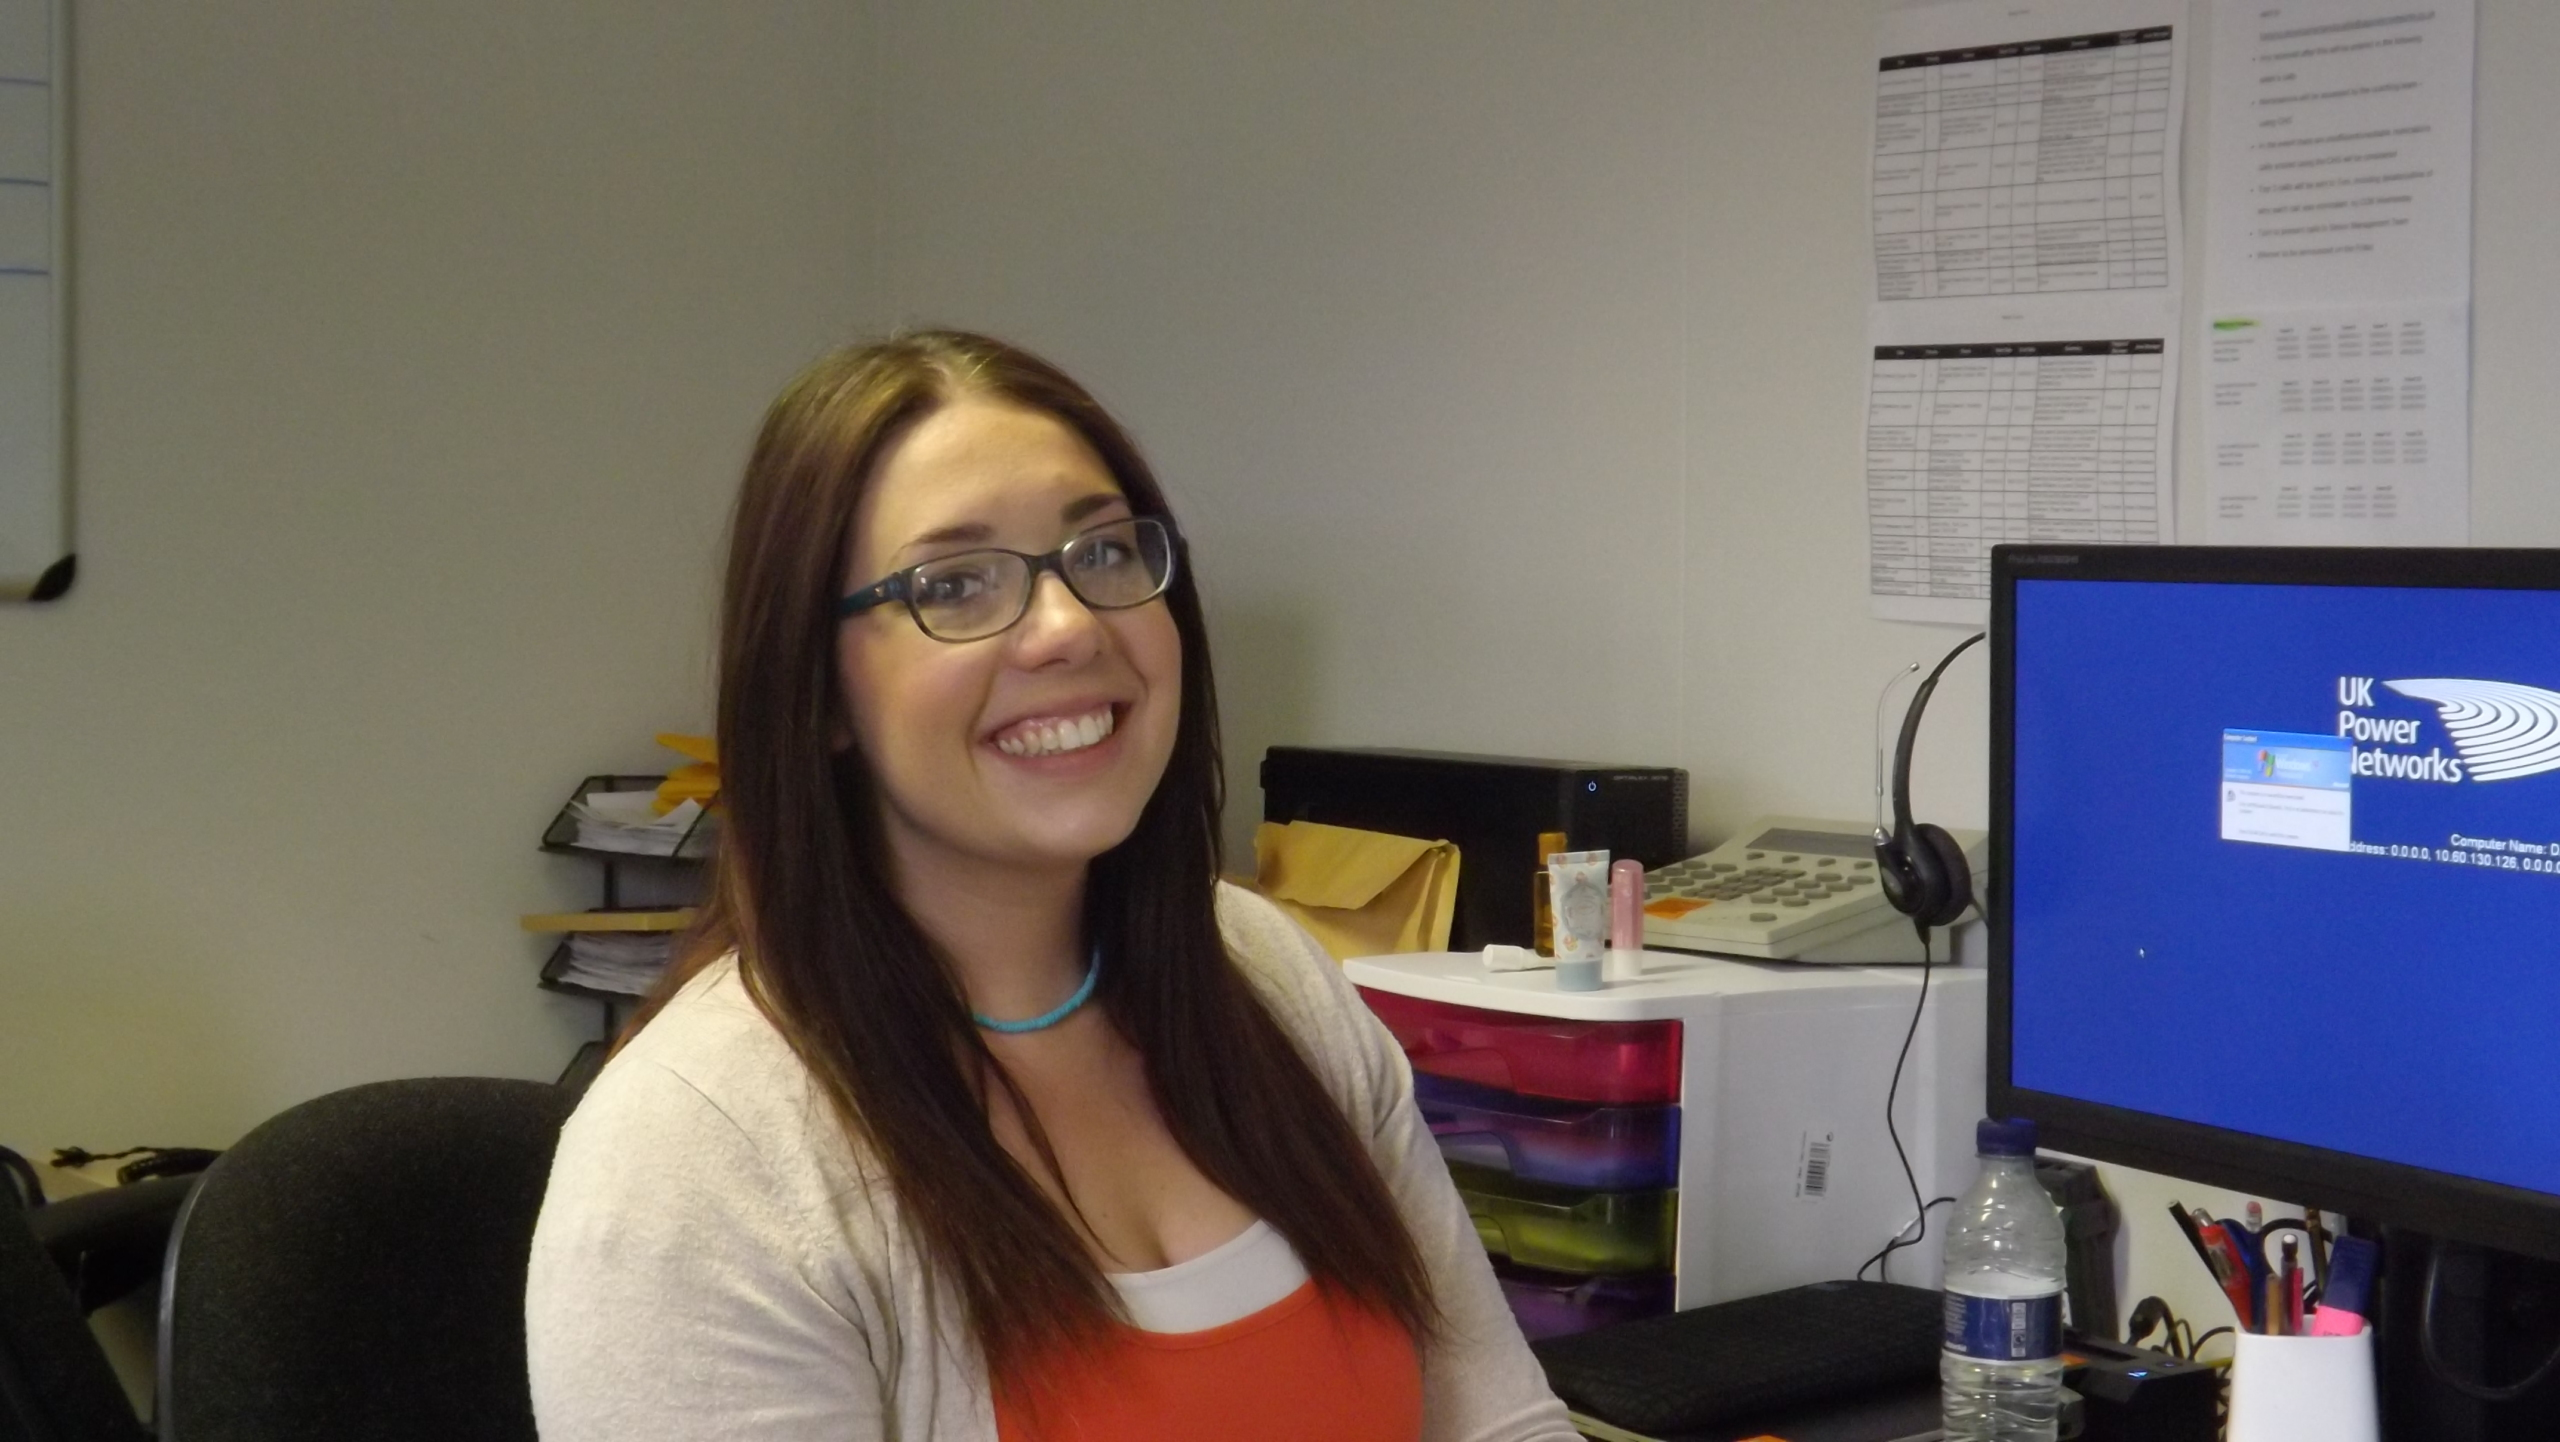 Lesley Watson from UK Power Networks' customer service team who has been trained to recognise signs of domestic abuse